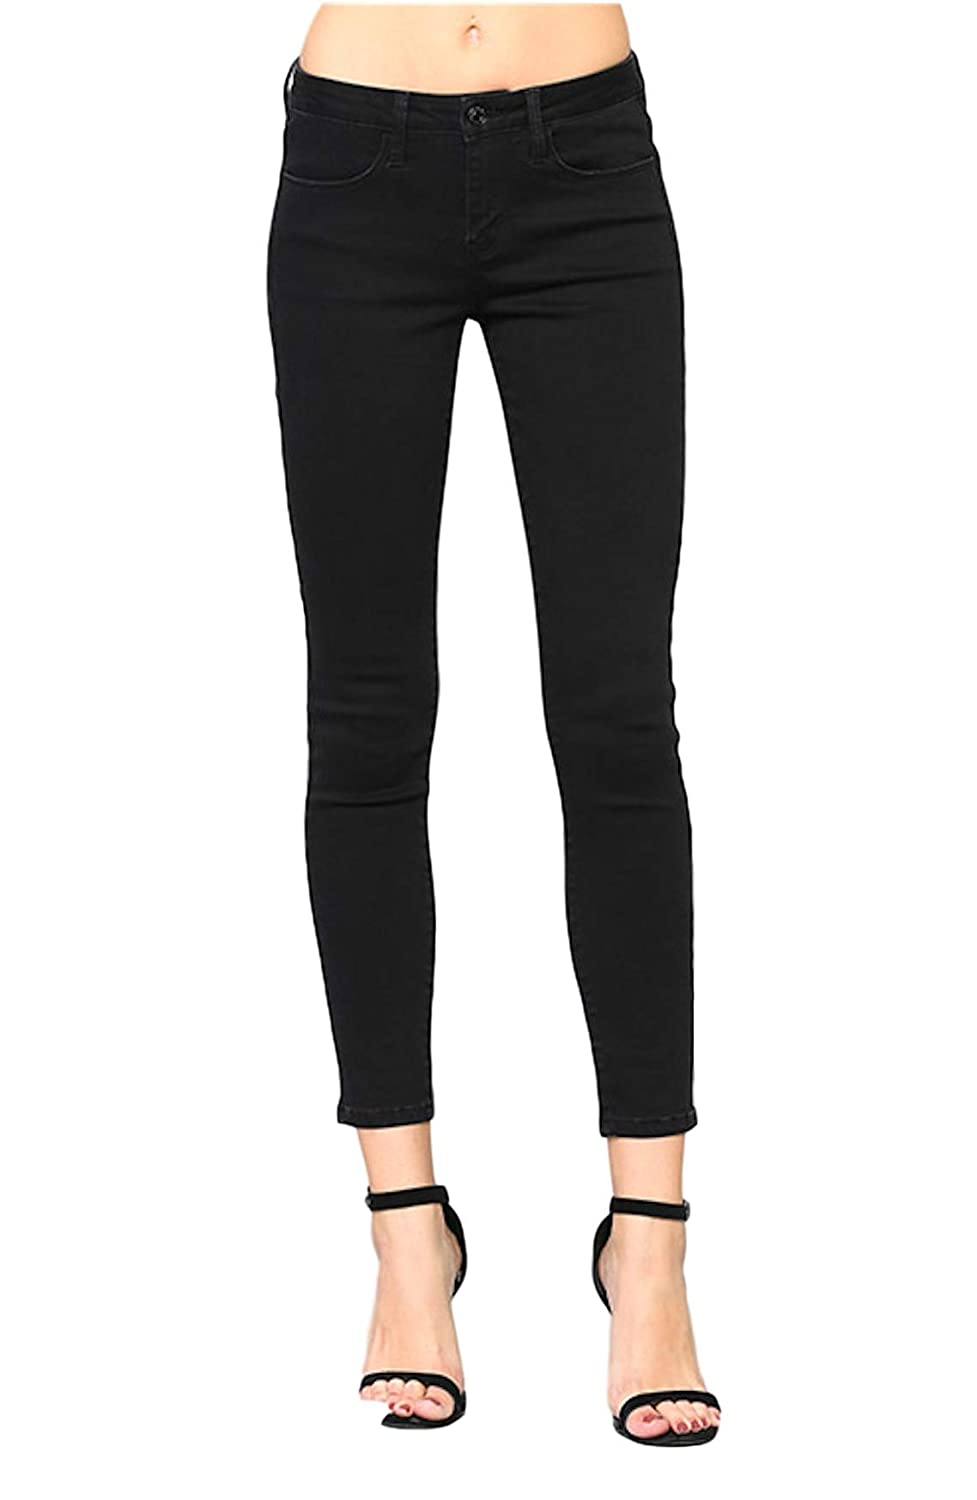 931132922df Vervet by Flying Monkey Jeans Women s Mid Rise Super Stretch Skinny Black  Negative Space Fabric 60% Cotton